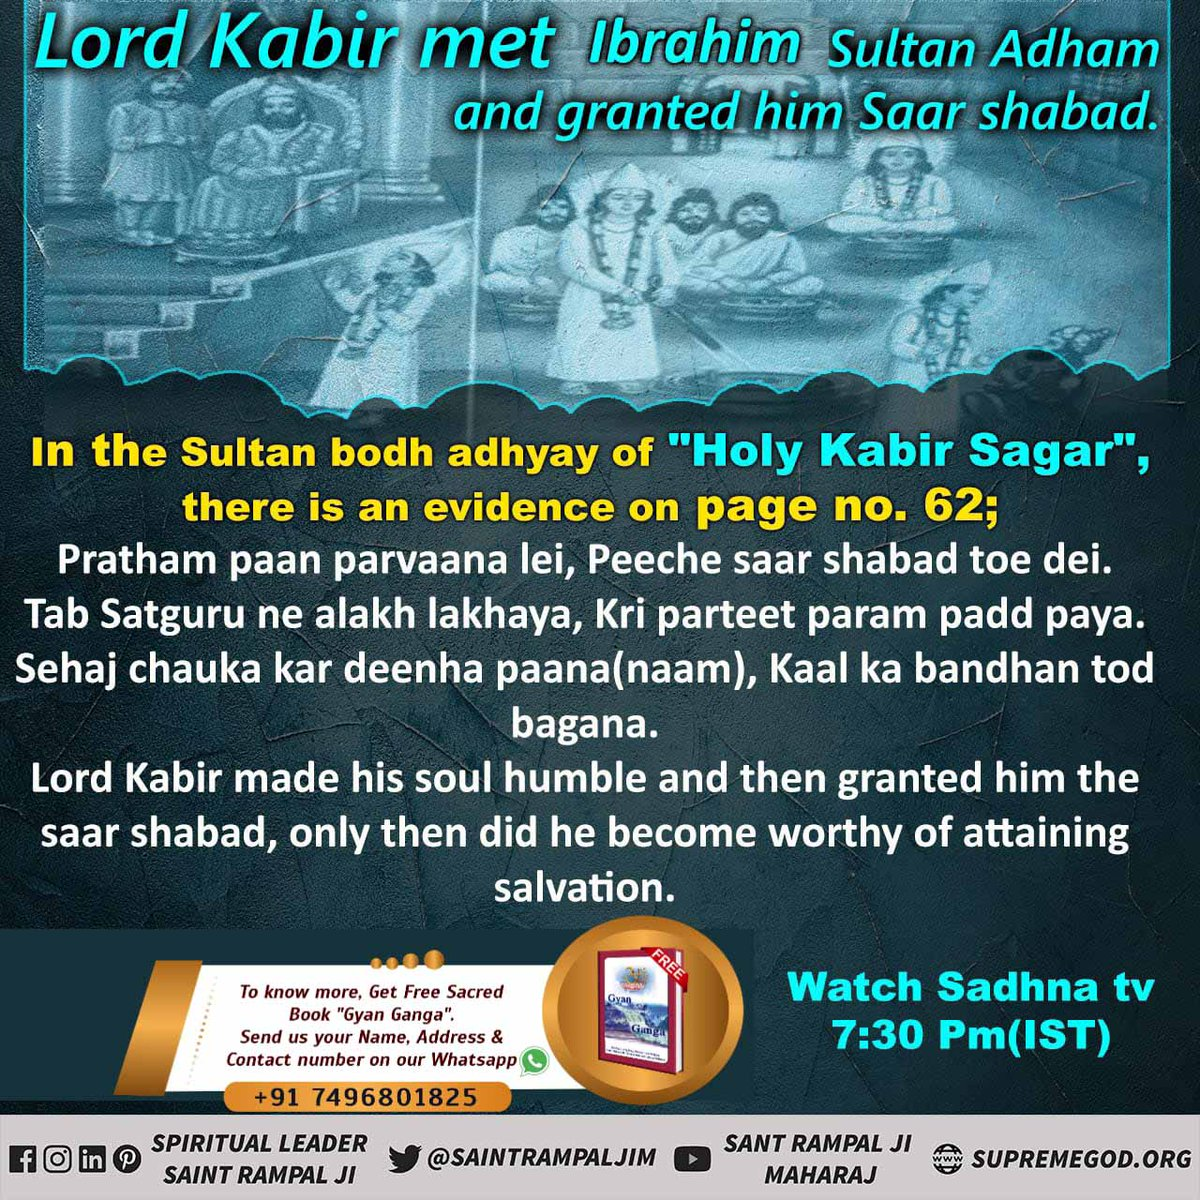 @SaintRampalJiM #EyeWitnessOfGod  Sultan Bodh lesson of Kabir Sagar at pages 62 there is evidence that Lord Kabir Ji made emperor Ibrahim Sultan Adham to a kind devotee and granted Saar Naam and then perfect Salvation.